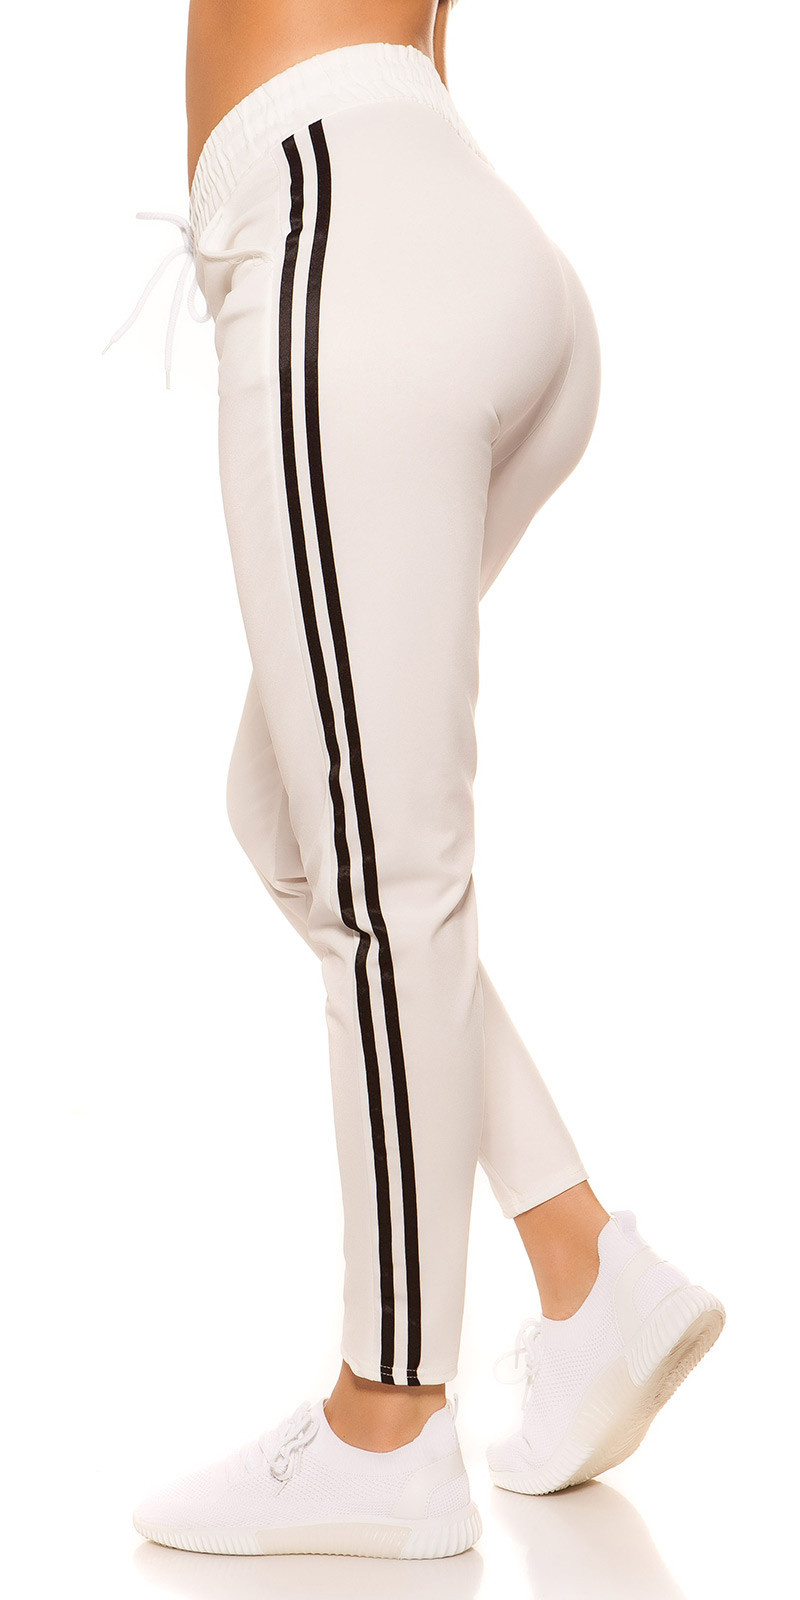 Trendy joggingbroek met strepen jaren 90 retro look wit